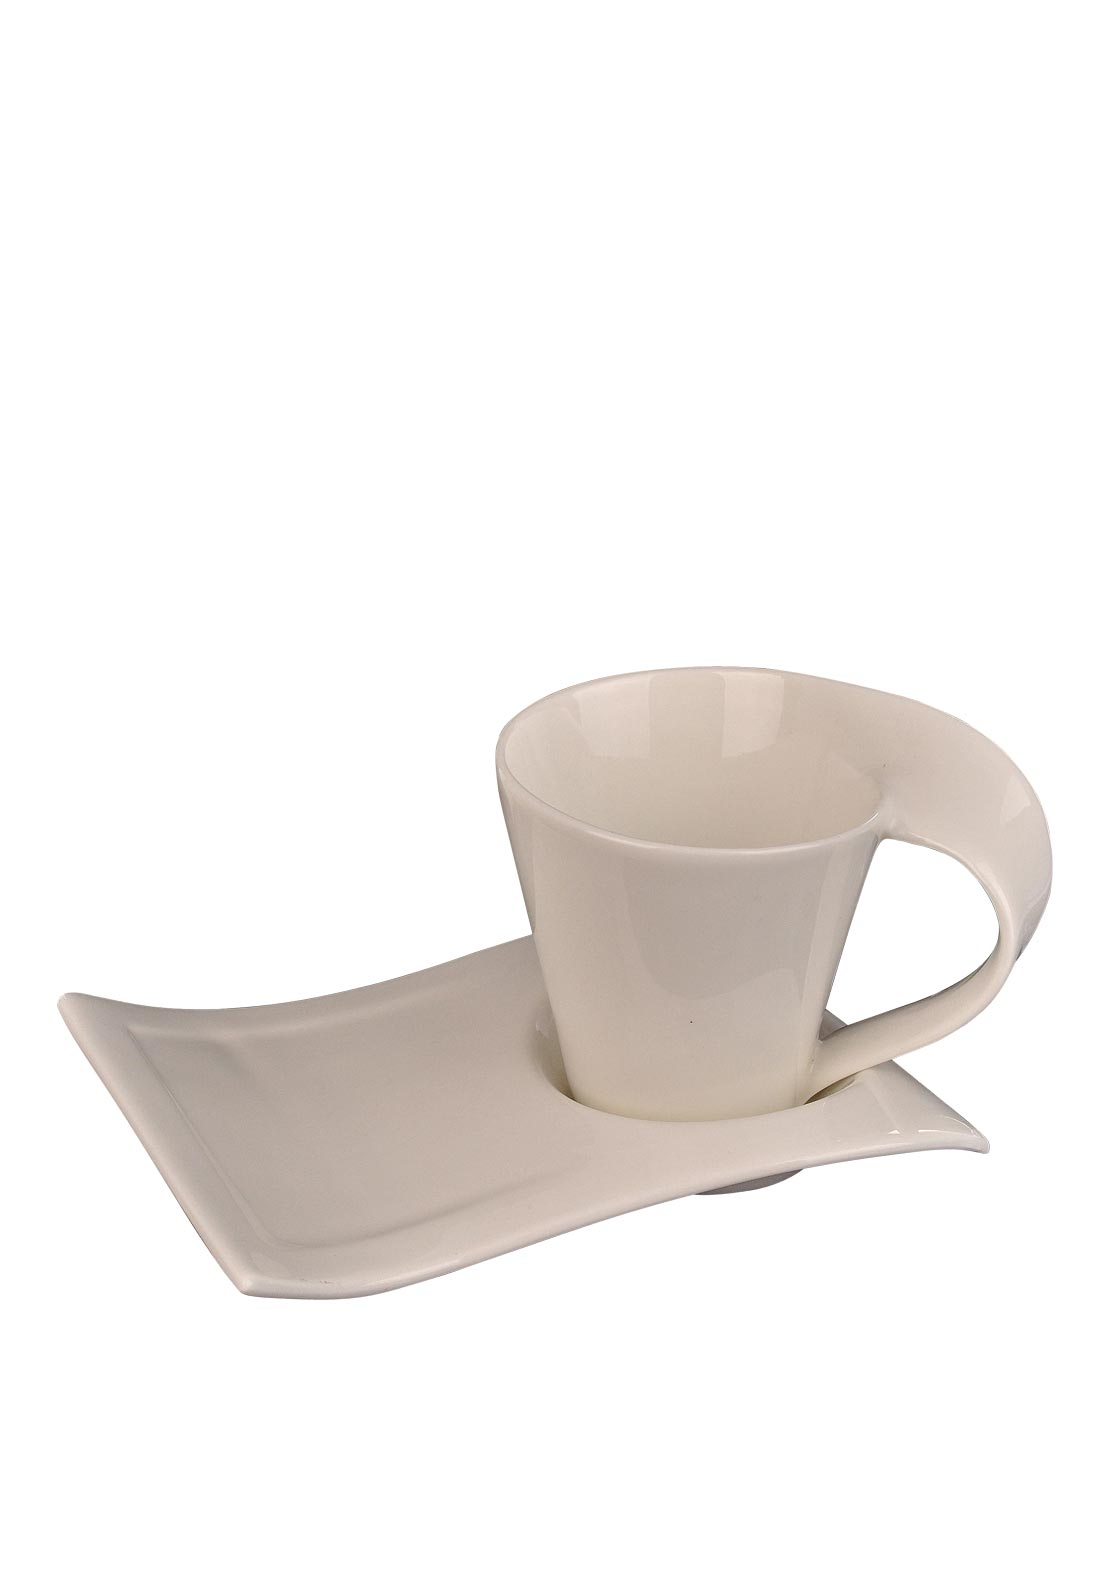 Slaneyside Pottery TV Cup and Side Plate Set, White